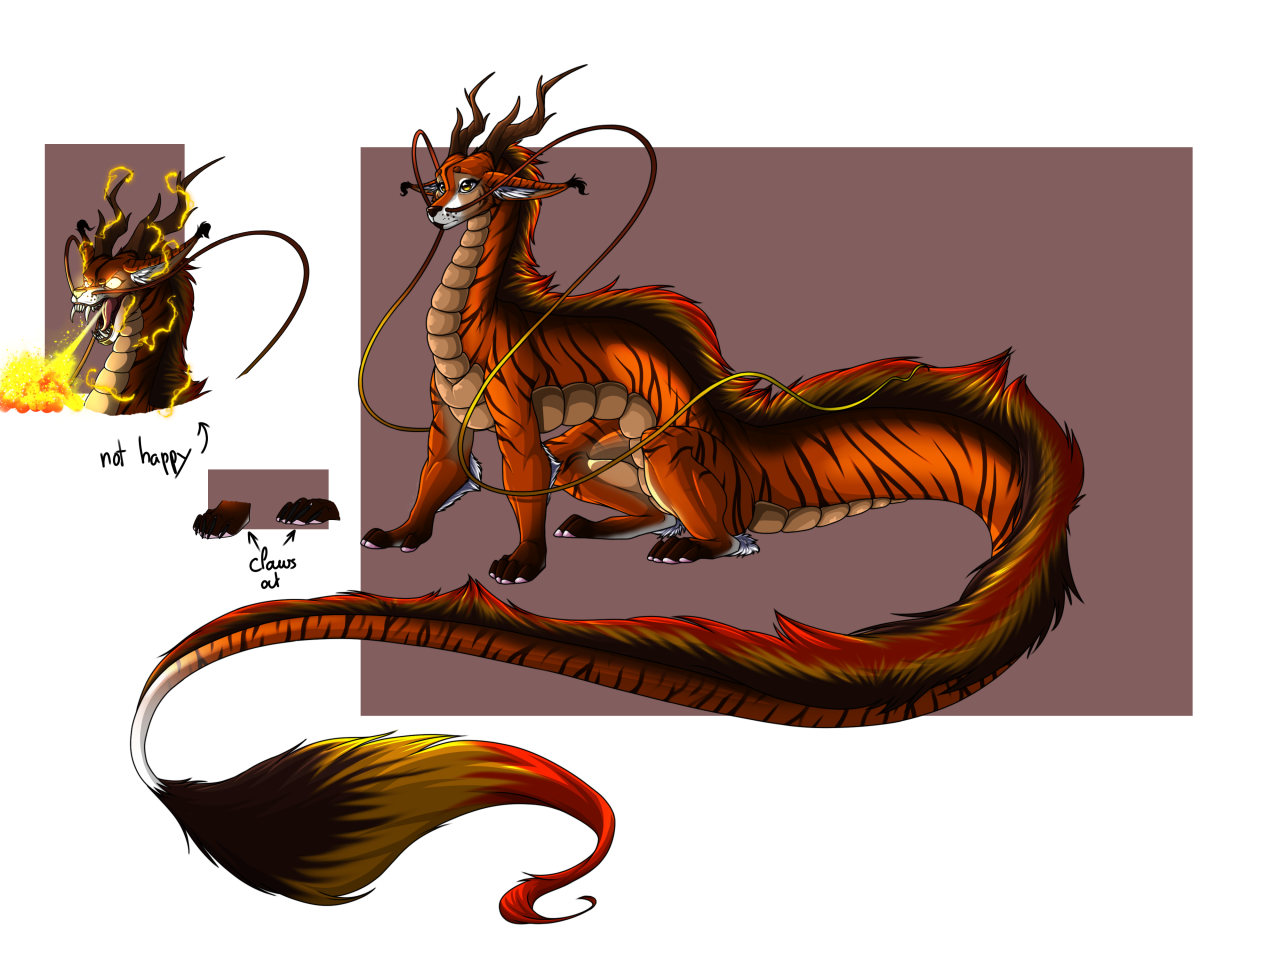 Took me a while to get the right colorAndI had much more fun on doing fire this timeCiara © Me #Dragon#Dragoness#Dragon Ball #Dragon Ball Z #DBZ#DBZ OC #Dragon Ball OC #OC#Creature#Tiger#dragons#Wings#Fire#Eastern#Eastern Dragon#Fur#Cute#Ciara#CiaraCocanovacci